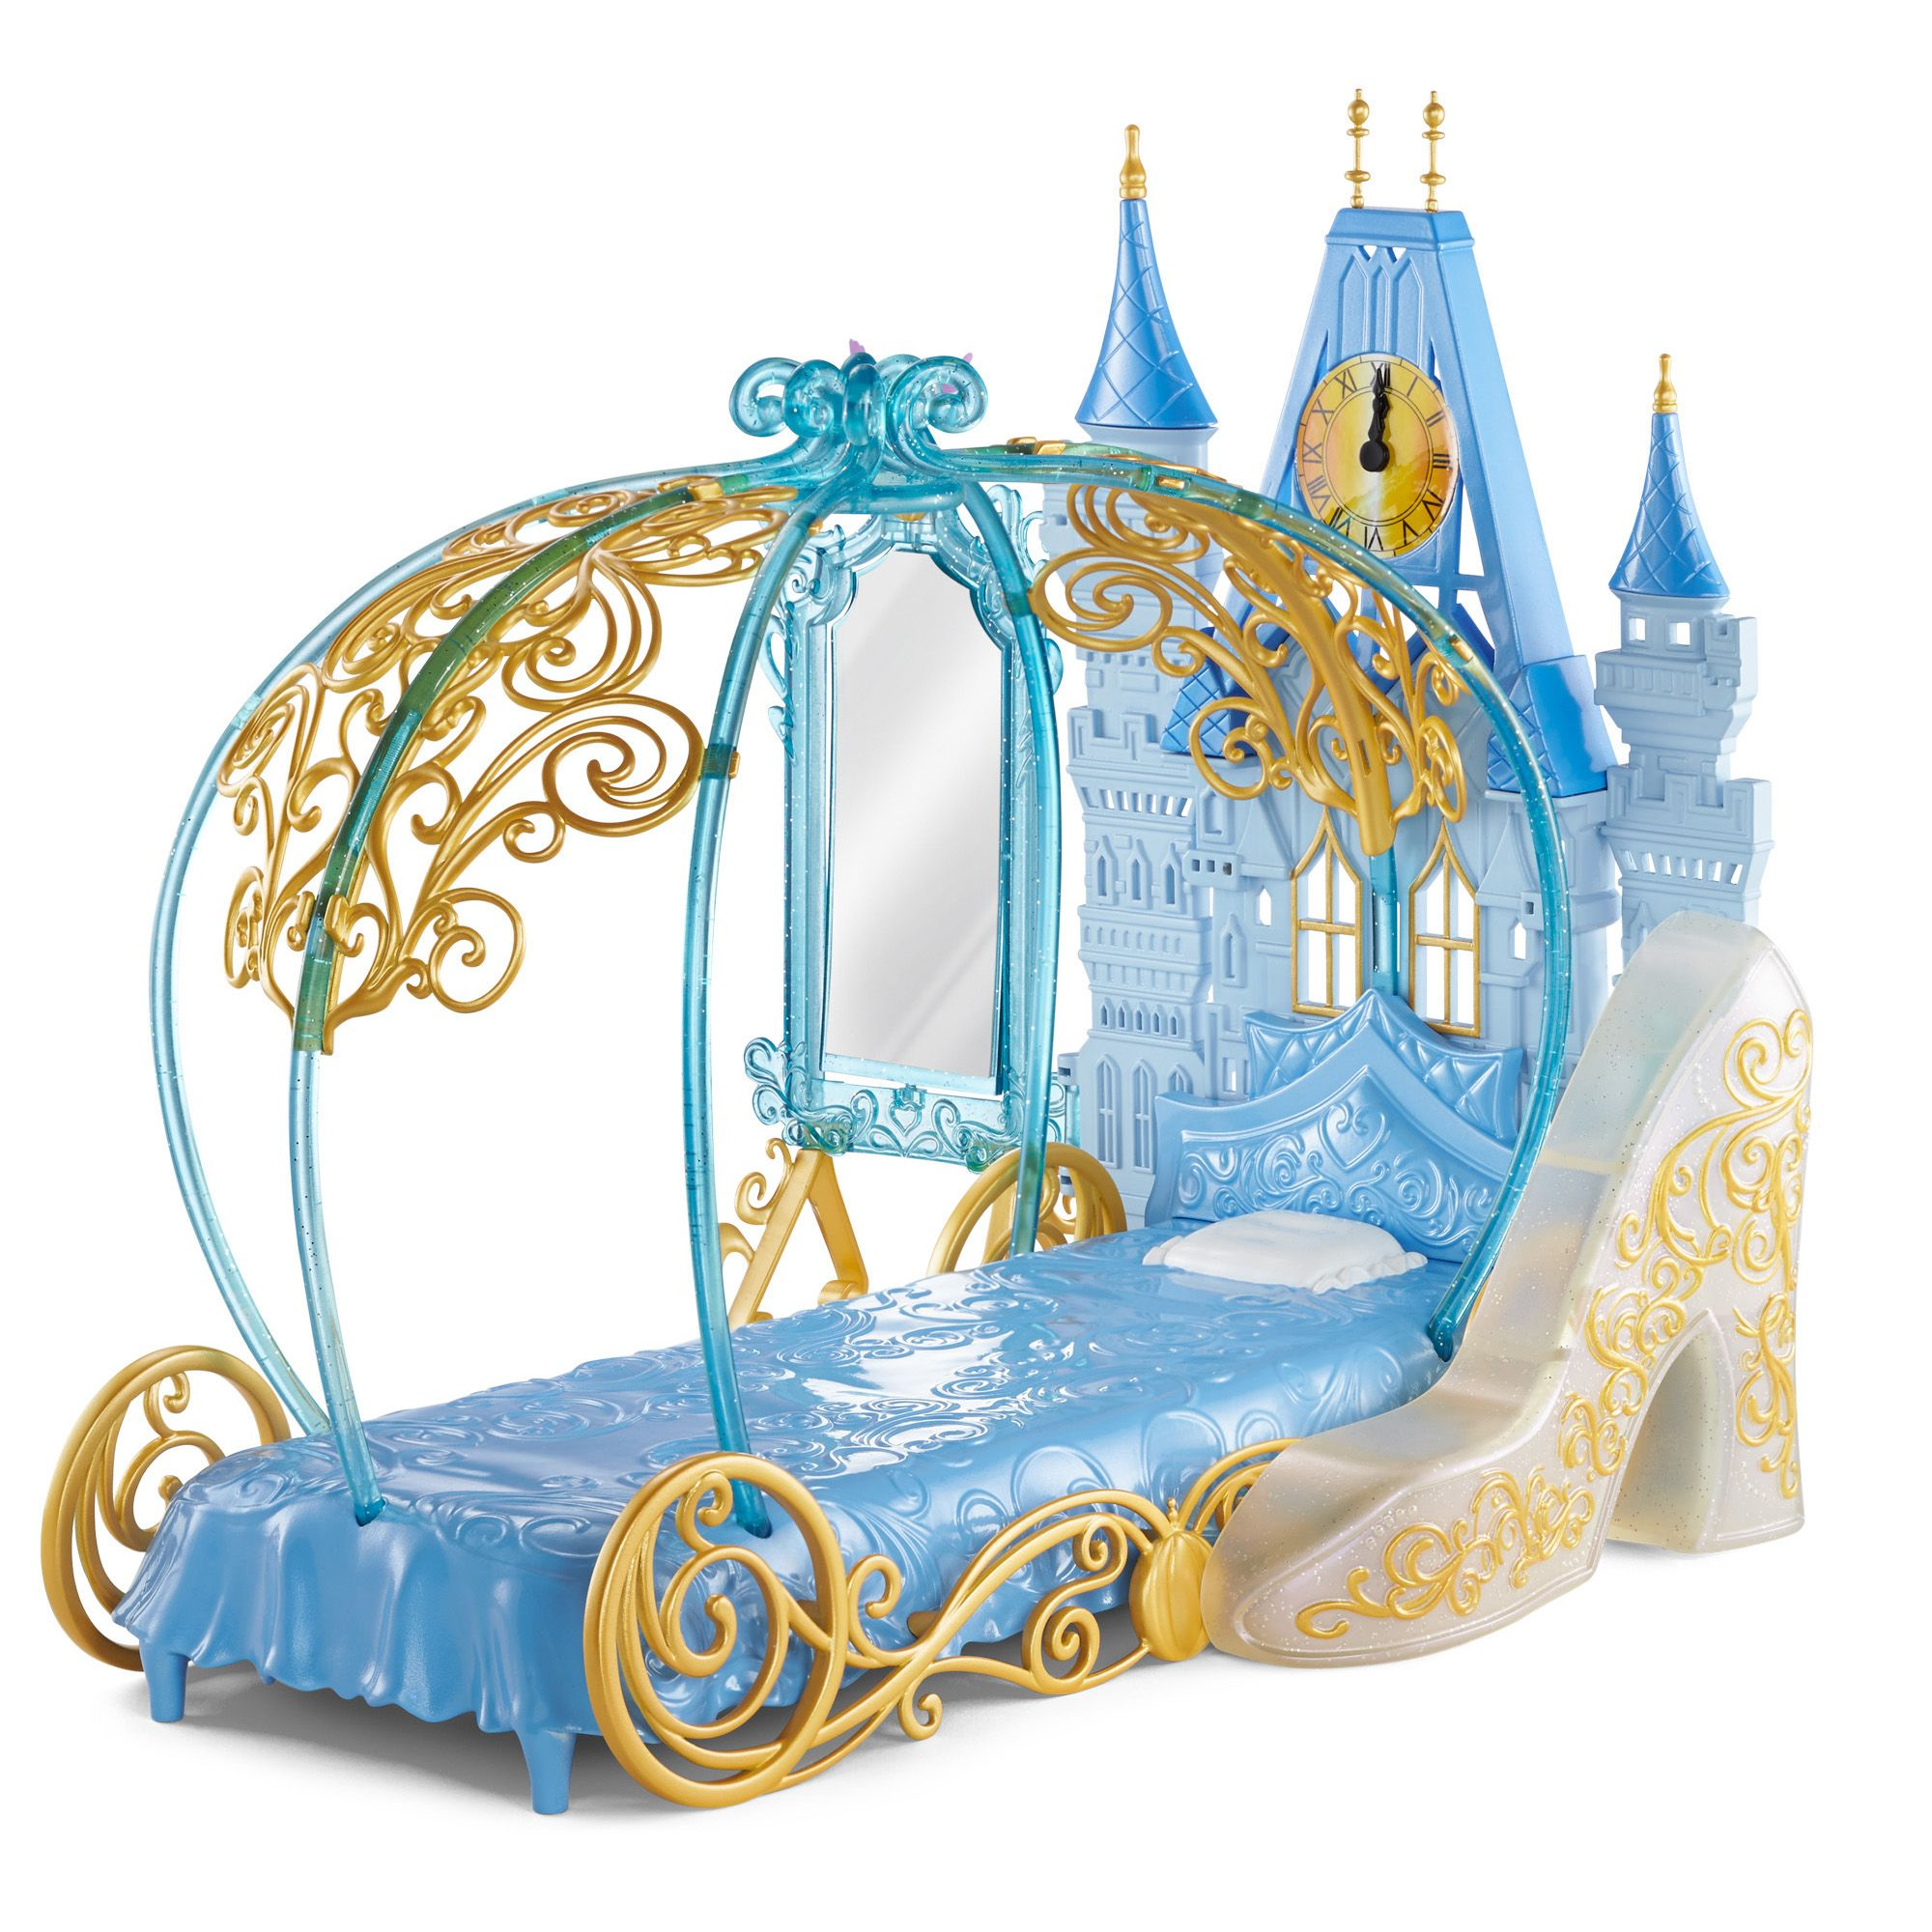 Carriage Bed Princess Cinderella Carriage Bunk Bed. Second-sun.co